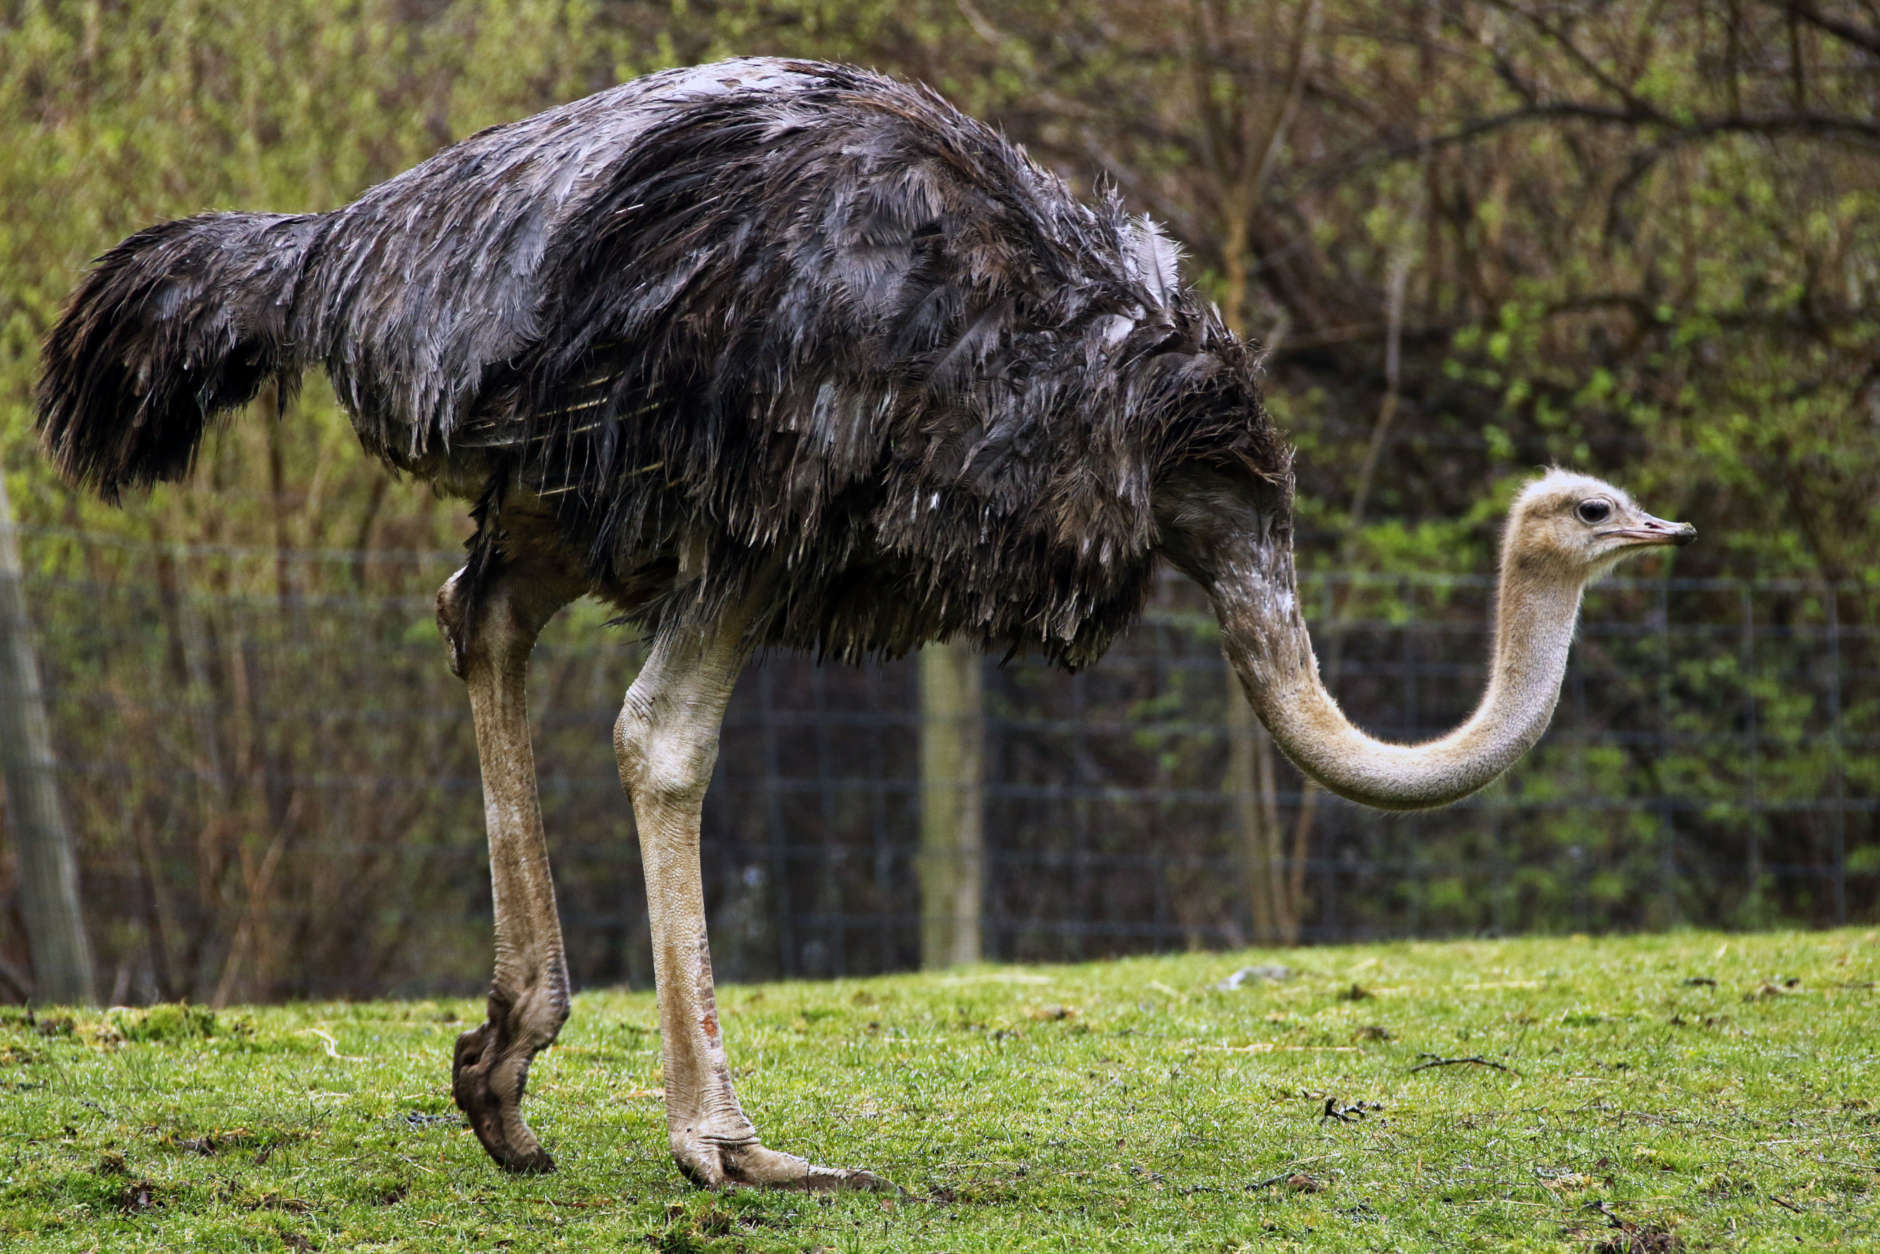 This is an Ostrich on display at the Pittsburgh Zoo in Pittsburgh, Tuesday, March 28, 2017. (AP Photo/Gene J. Puskar)